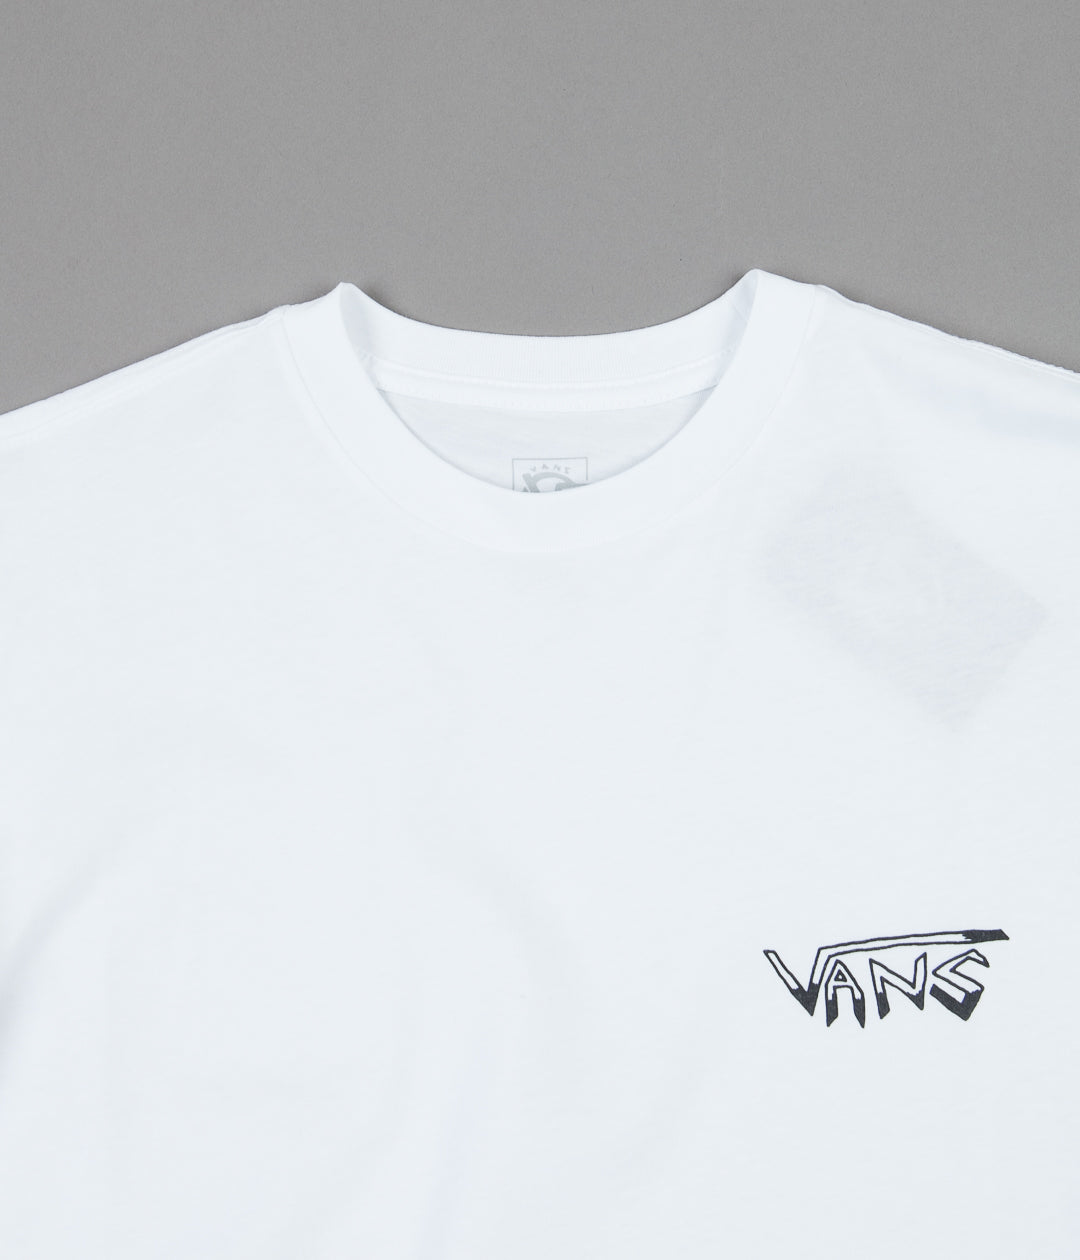 Vans Rowan Zorilla Faces Long Sleeve T-Shirt - White